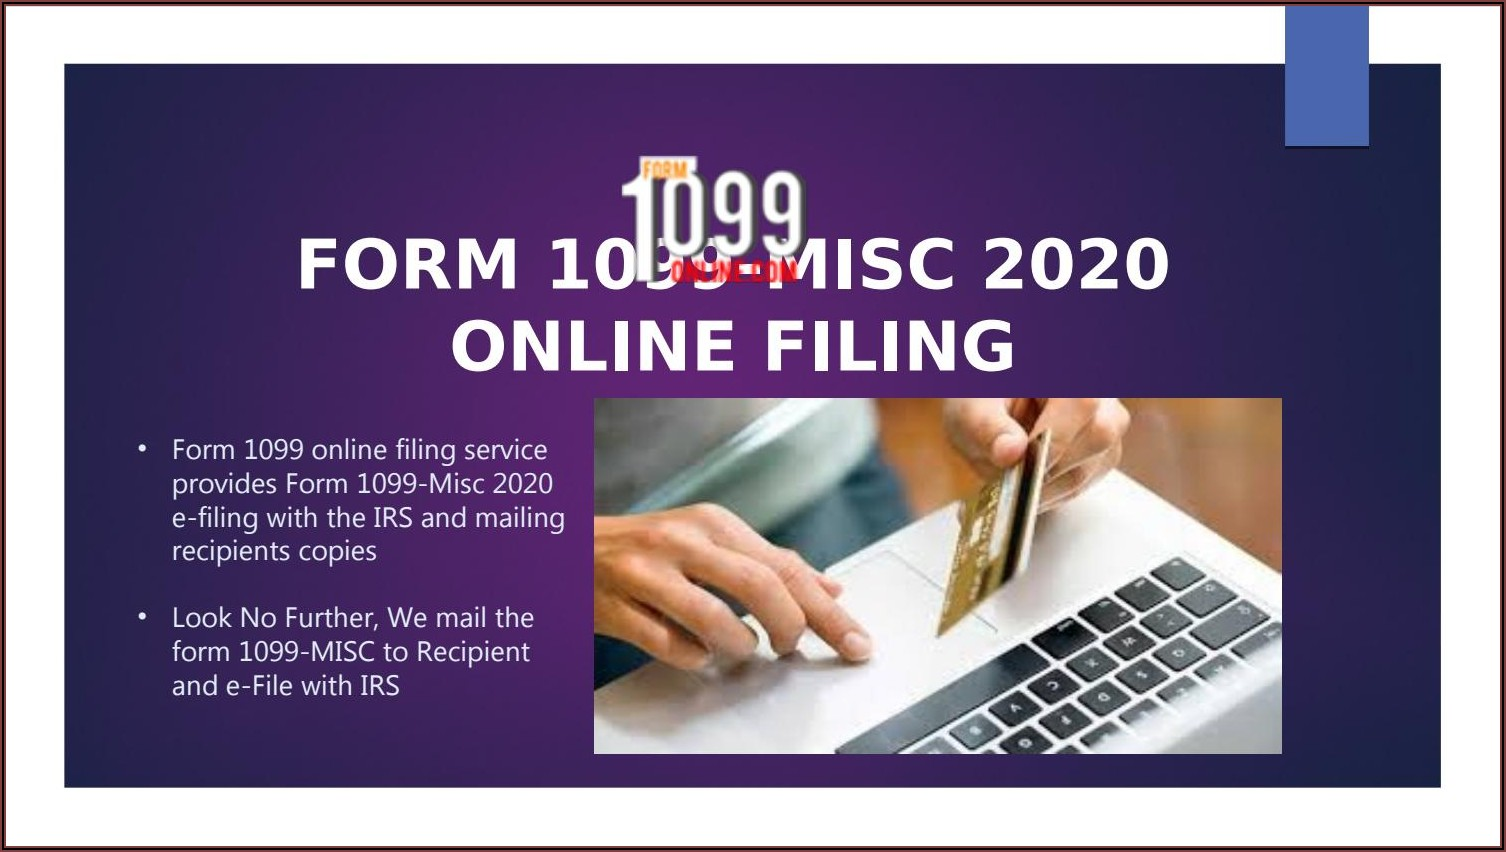 Where Can I Get Irs Form 1099 Misc